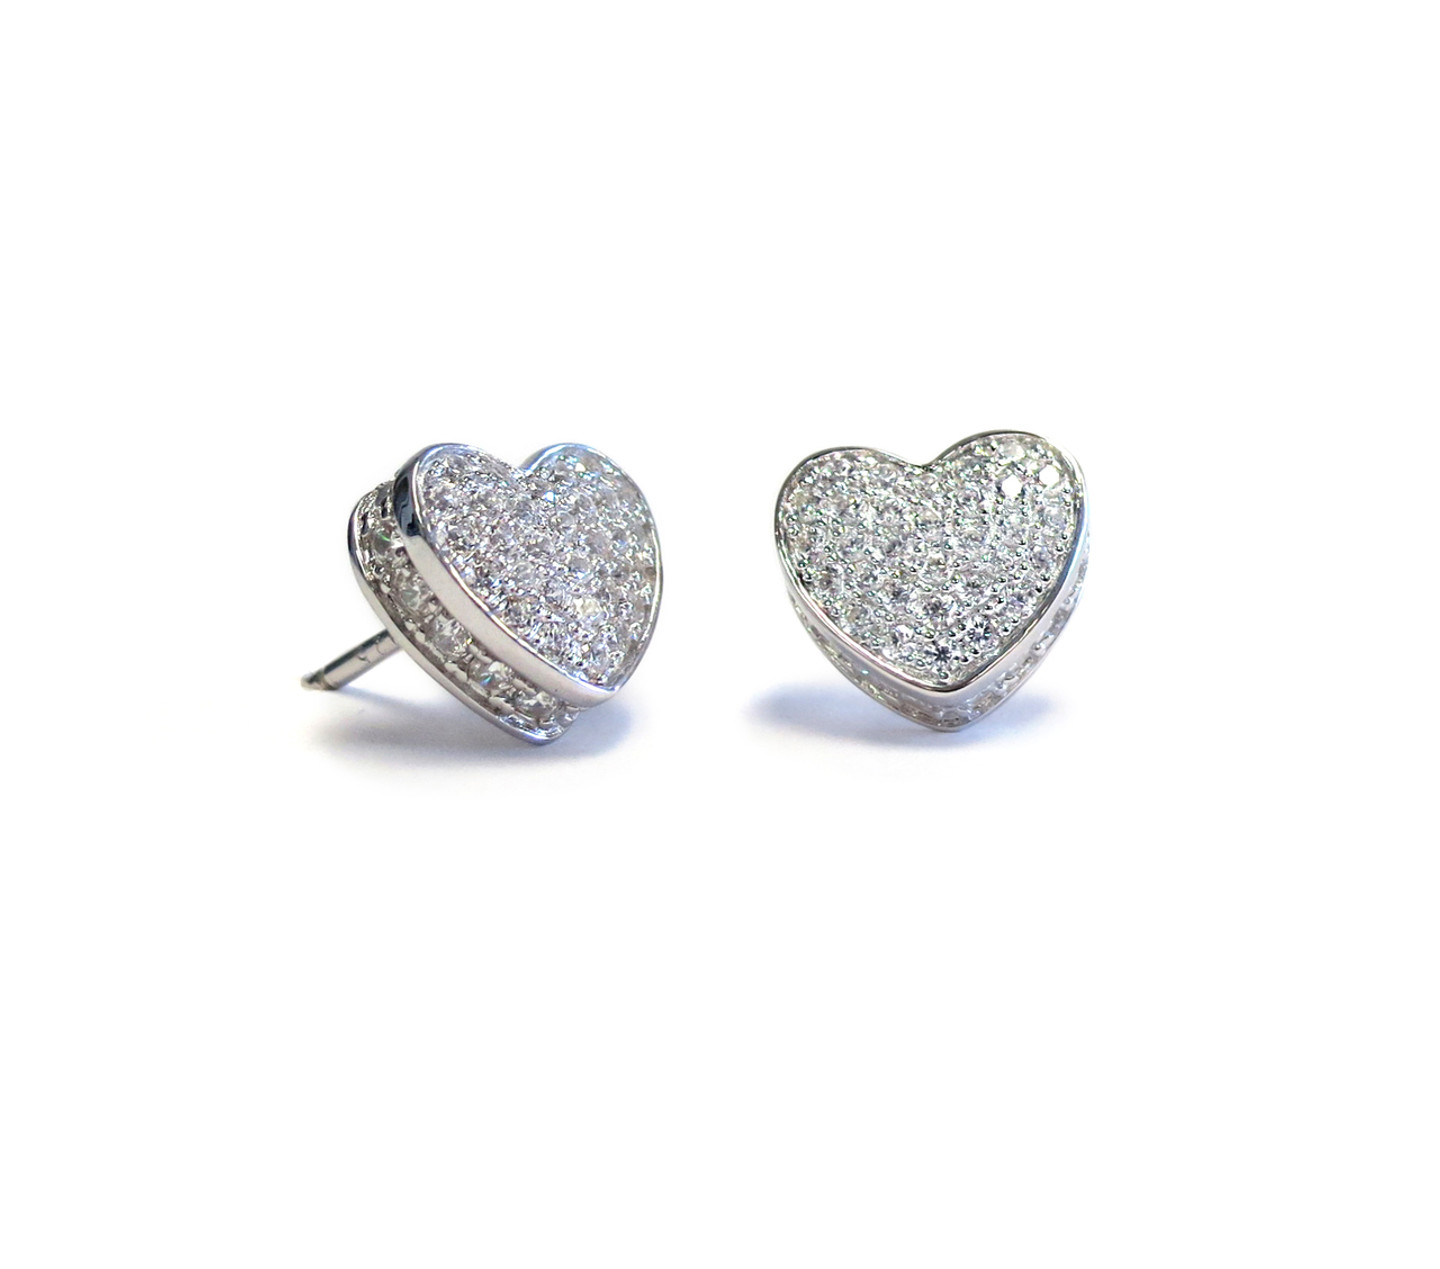 lrg heart shop silver by earrings stud jewellery item written gravestock laura